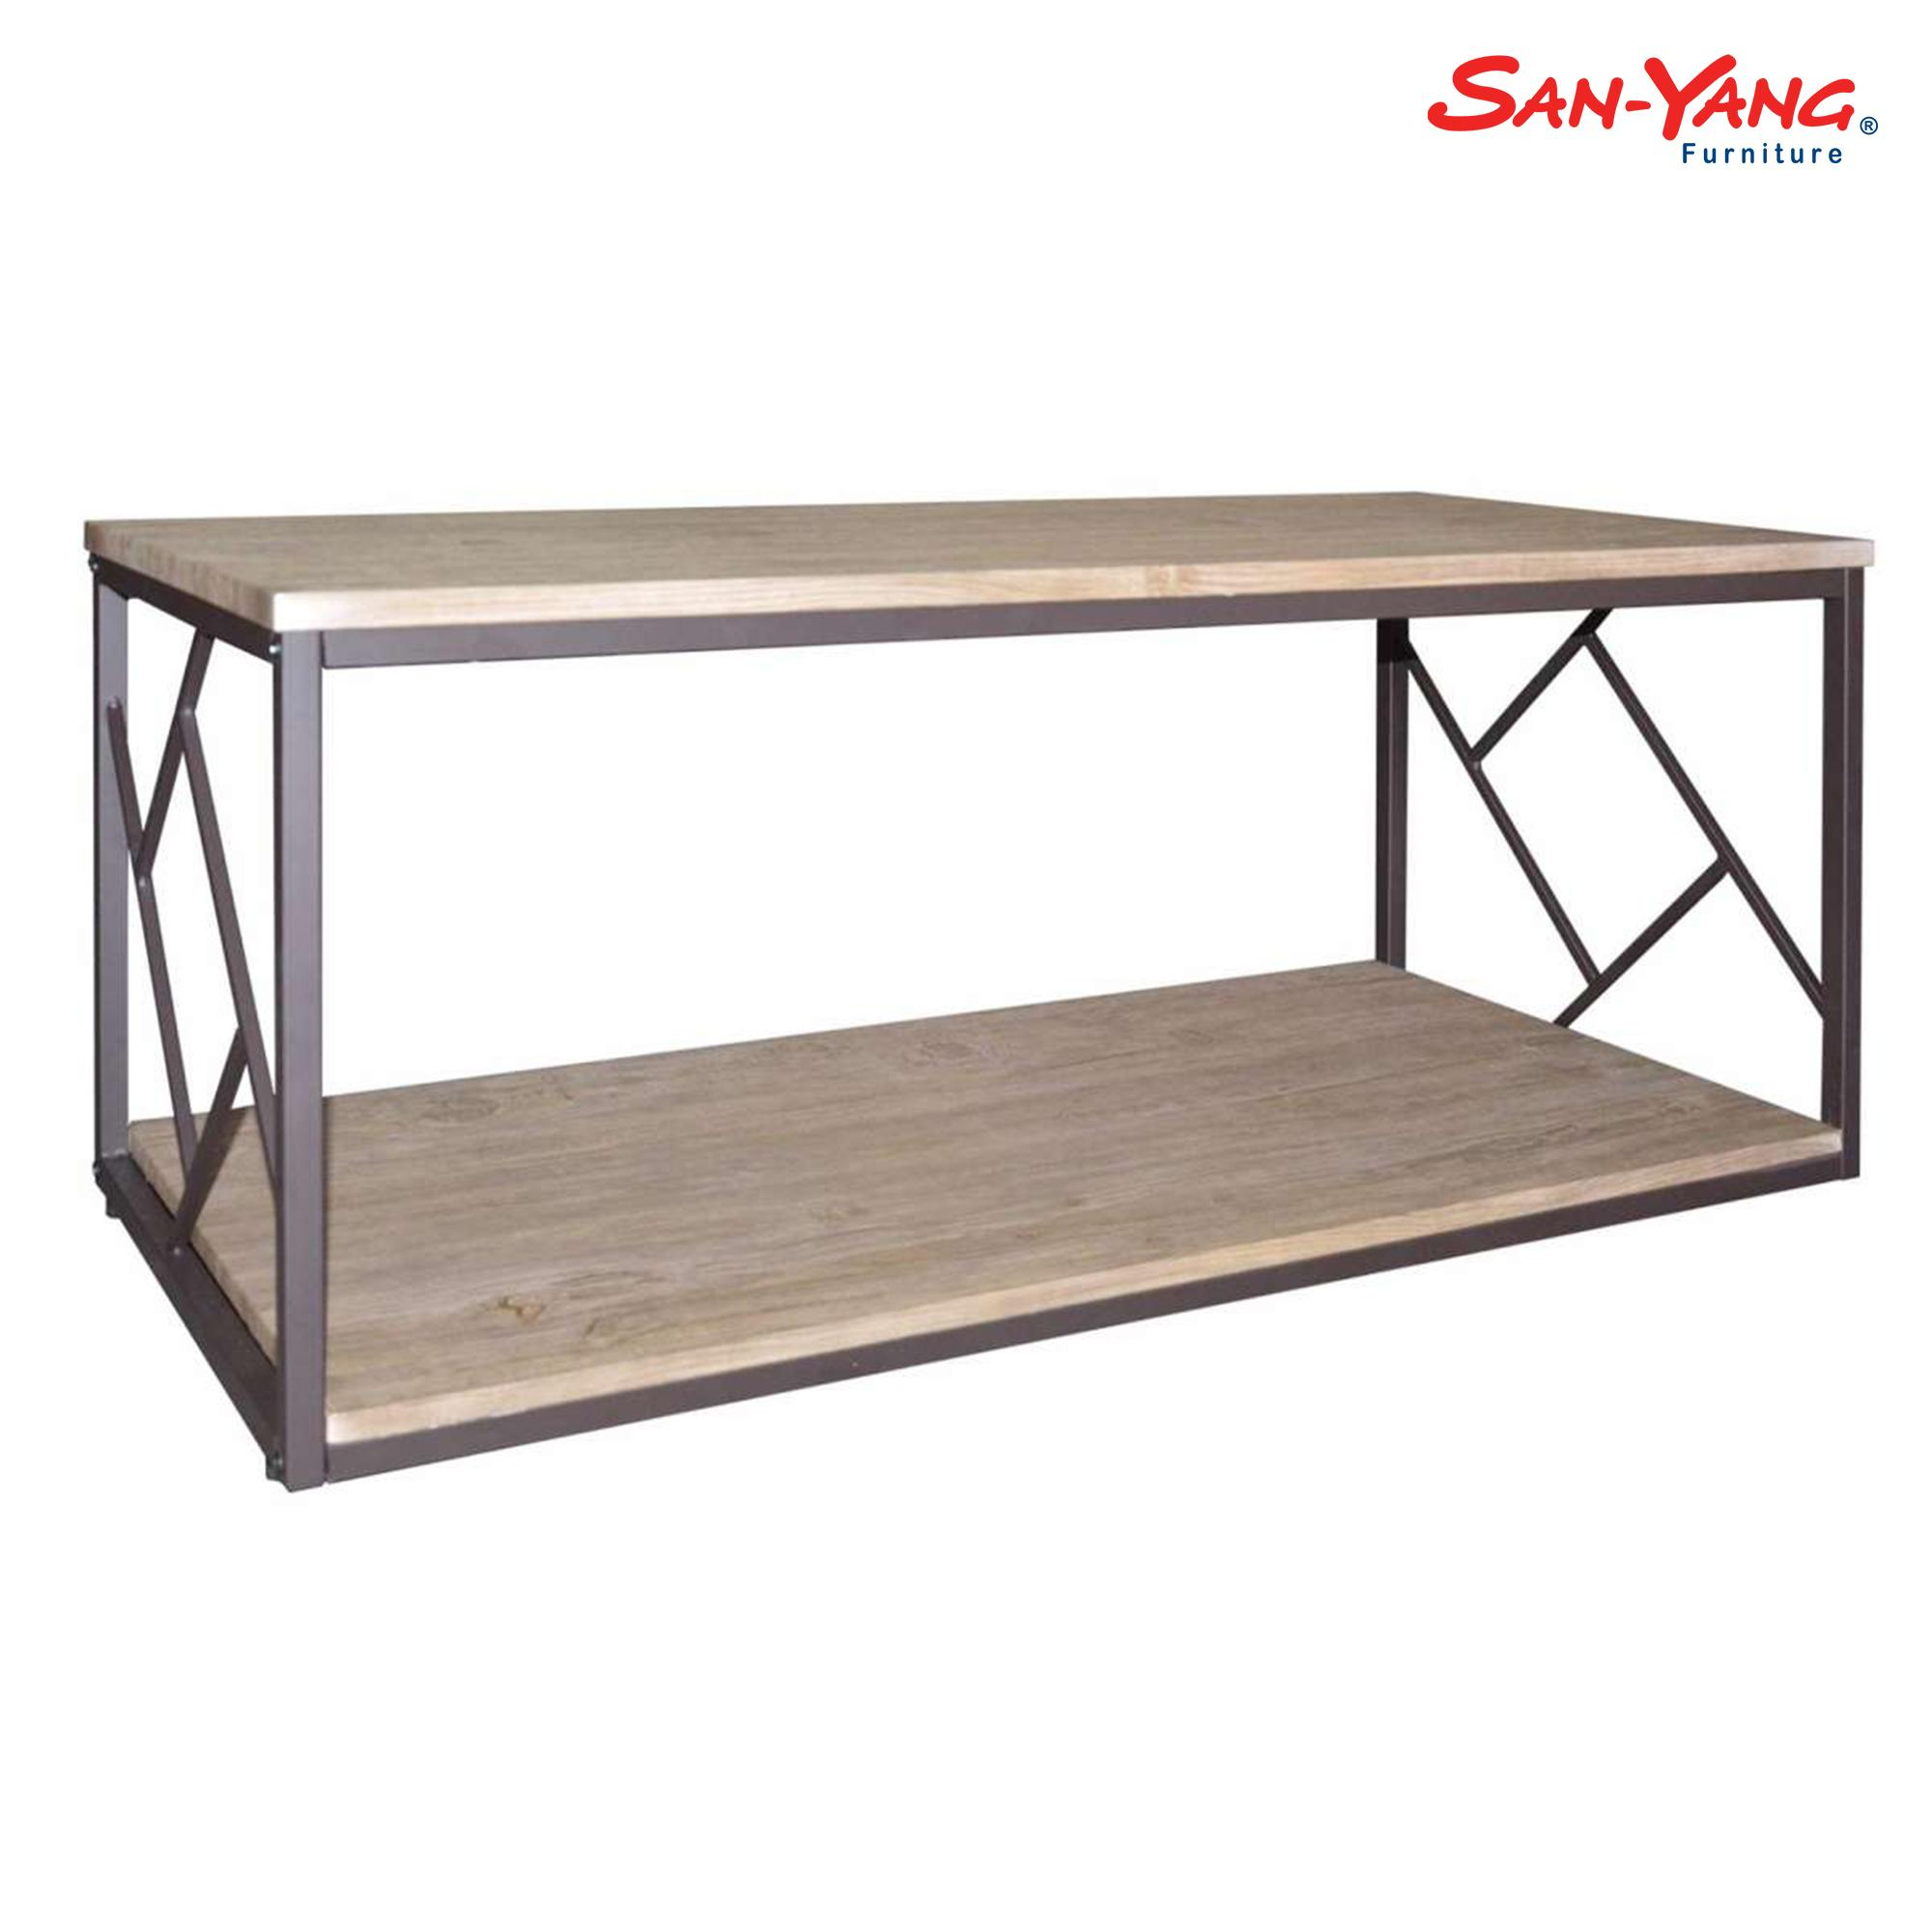 Table For Sale – Home Tables Prices, Brands & Review In Philippines For Layered Wood Small Square Console Tables (View 13 of 30)